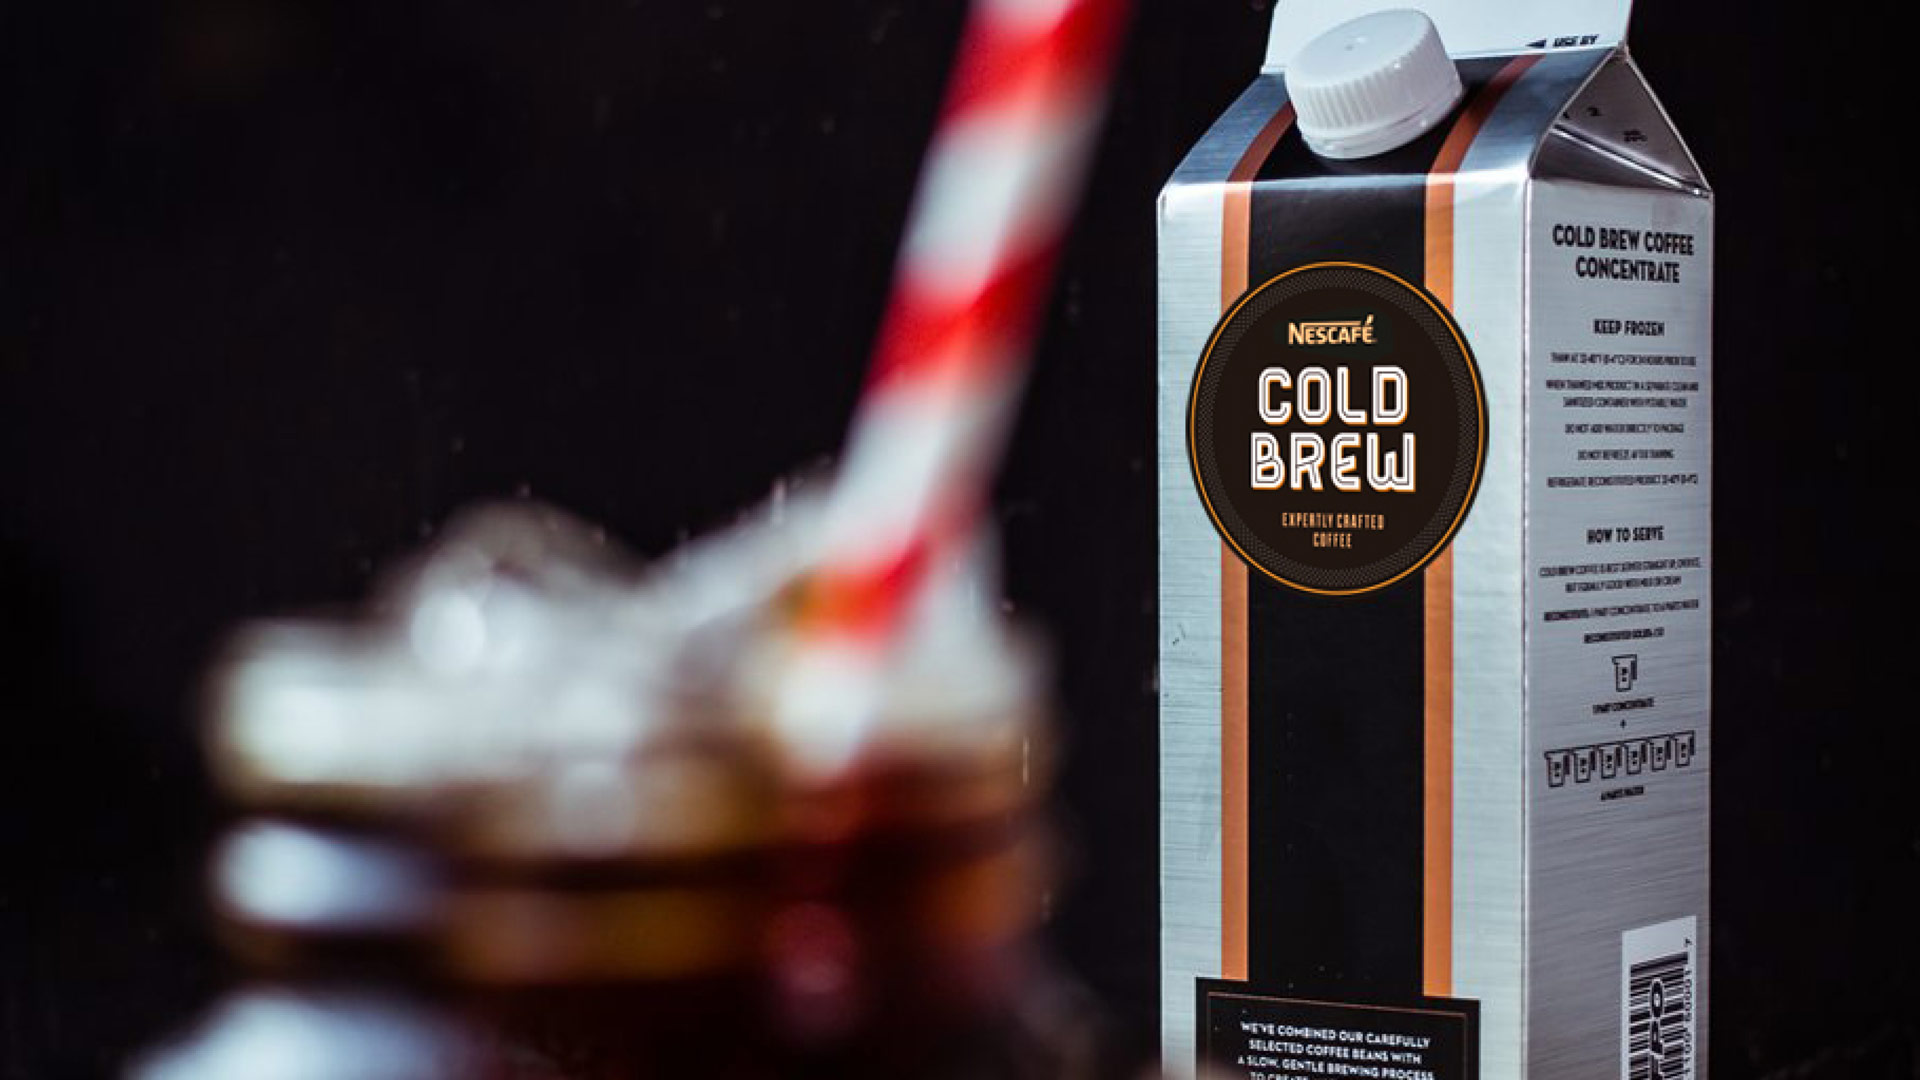 Nescafe_cold_brew_case_study4